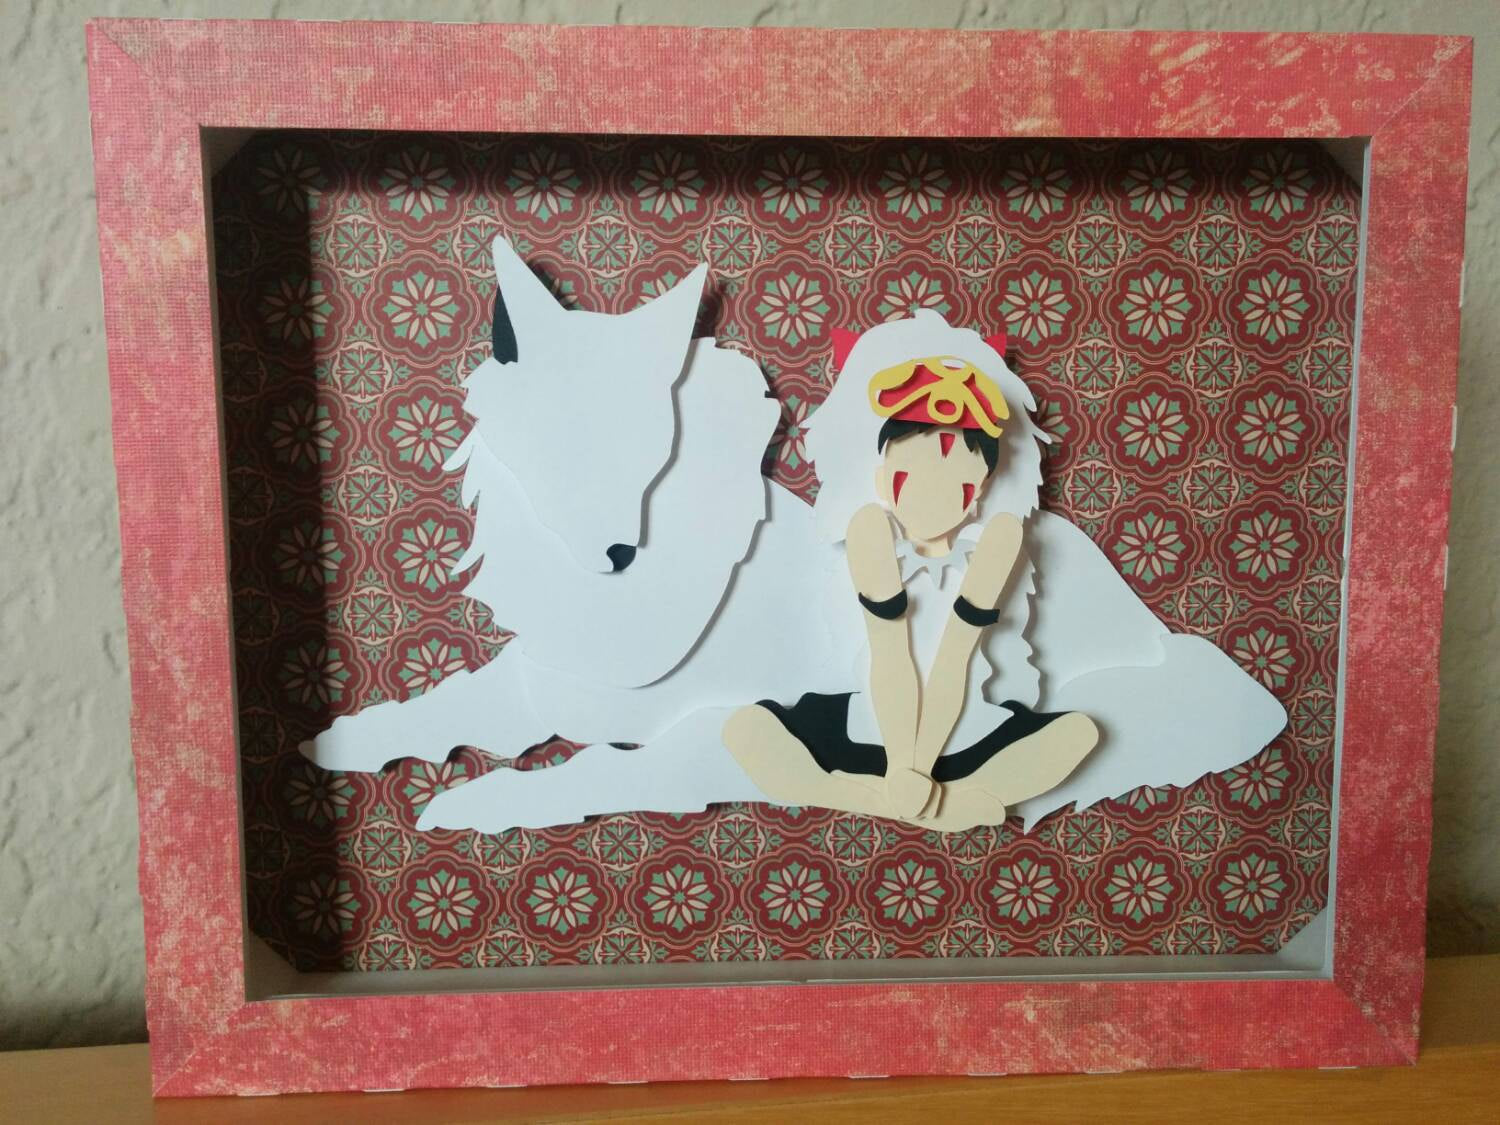 "Sans and Moro, Ghibli Princess Mmononoke - 8""x10"" Shaowbox PaperCut"